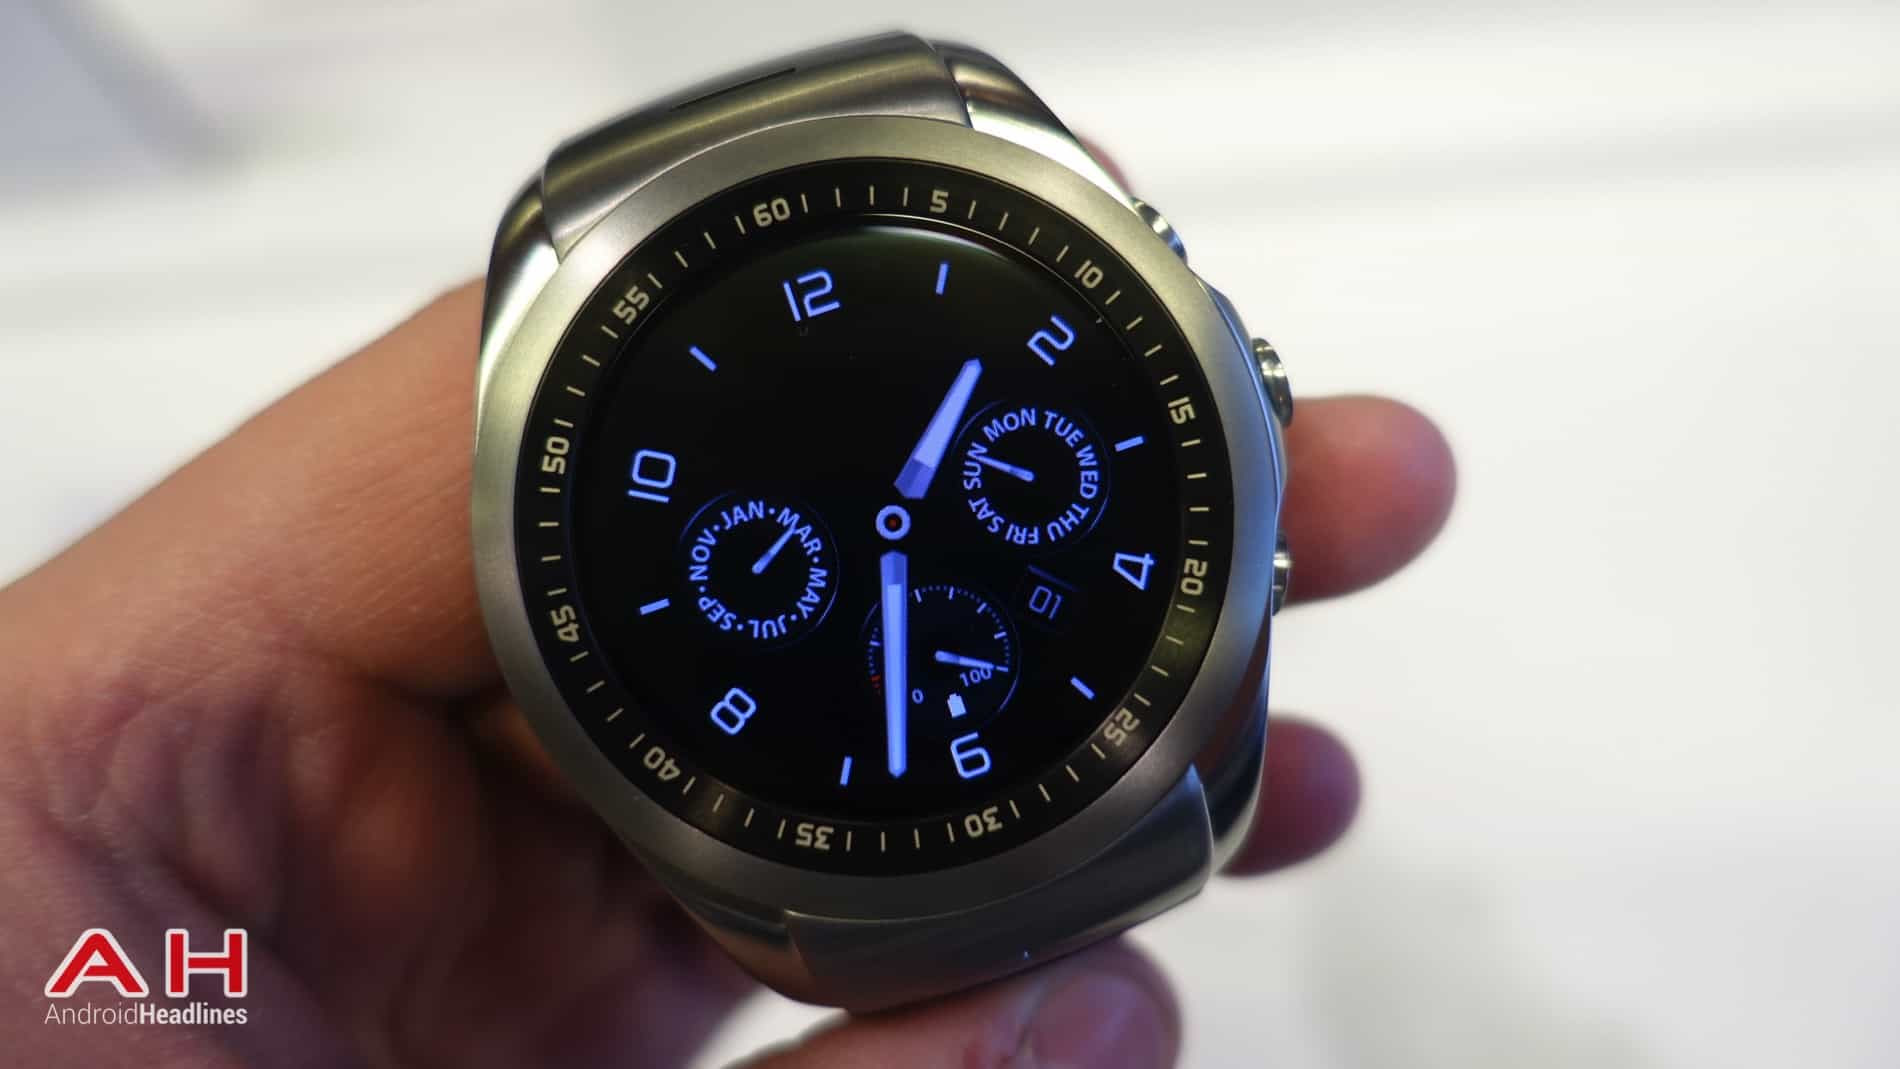 LG Watch Urbane hands-on: An Android Wear smartwatch - Ezy4gadgets